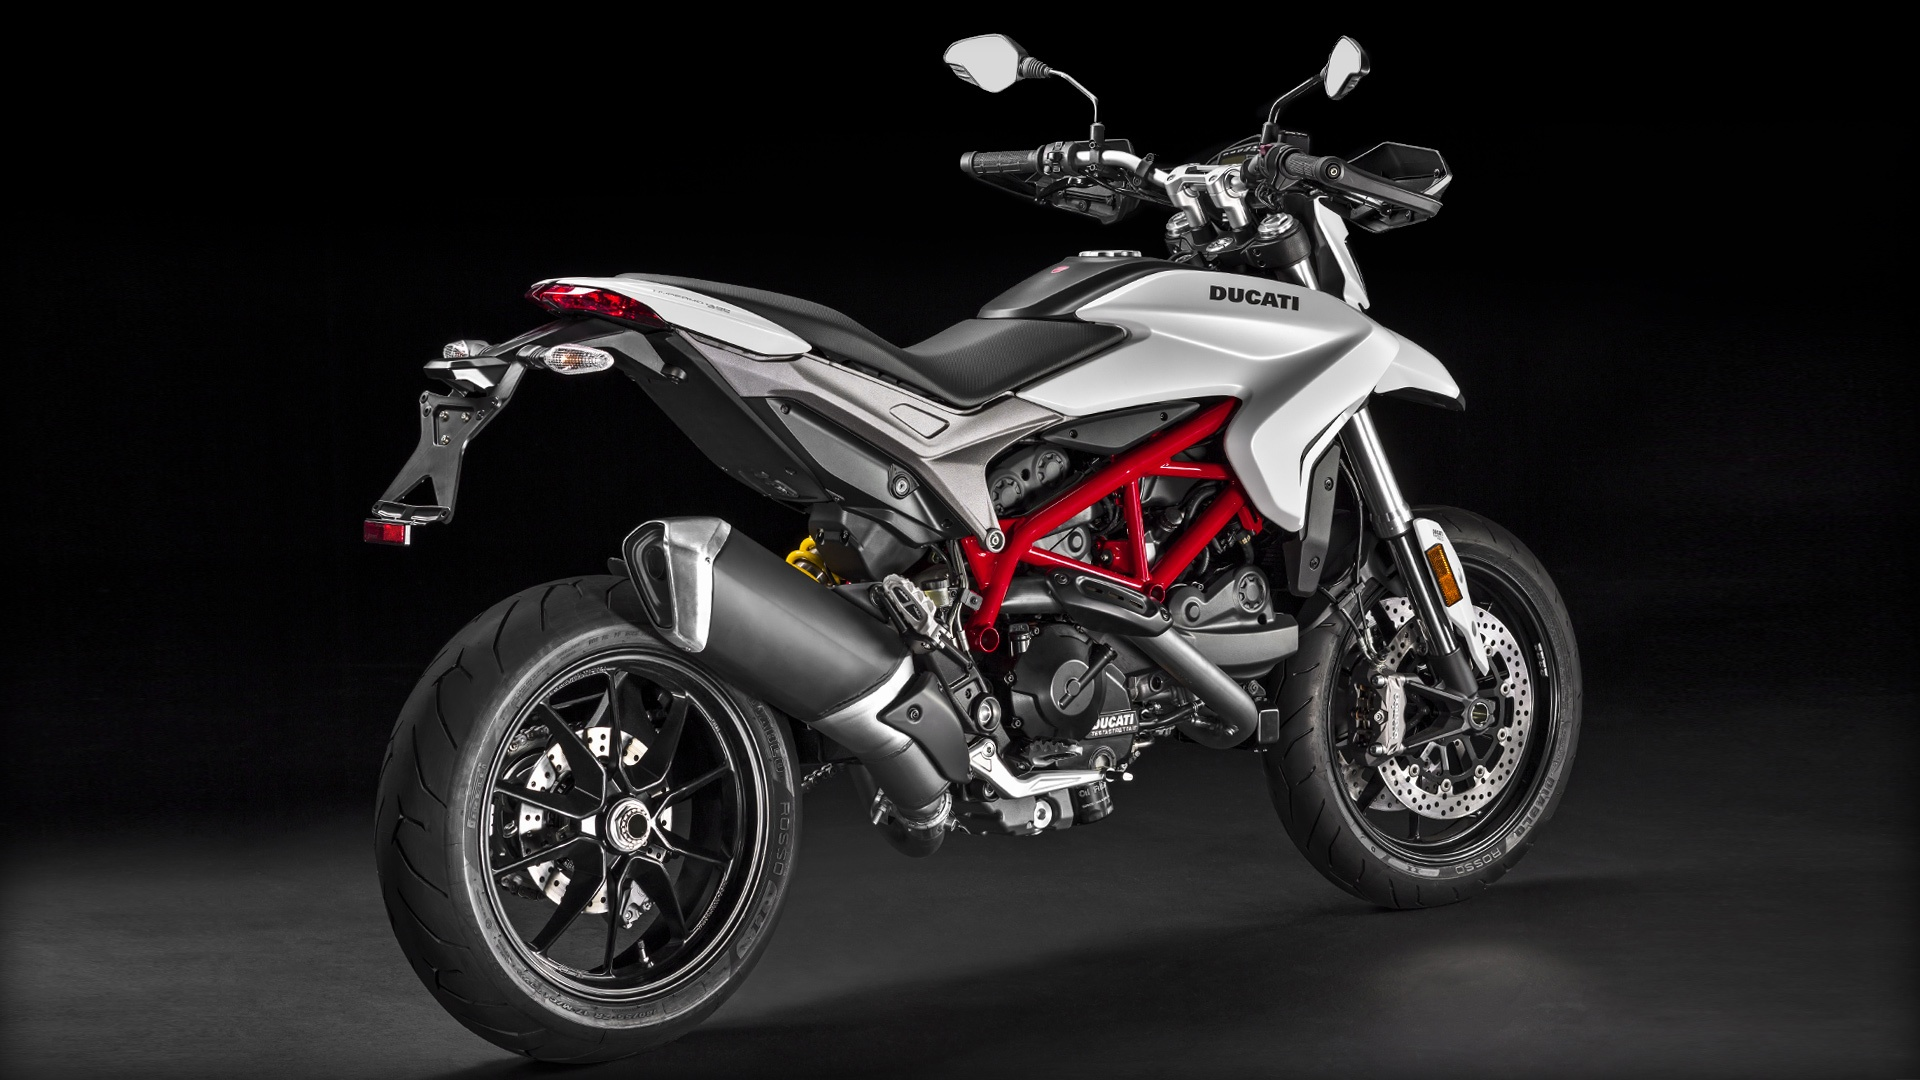 Hypermotard-939_2016_Studio_W_D01_1920x1080.mediagallery_output_image_[1920×1080]